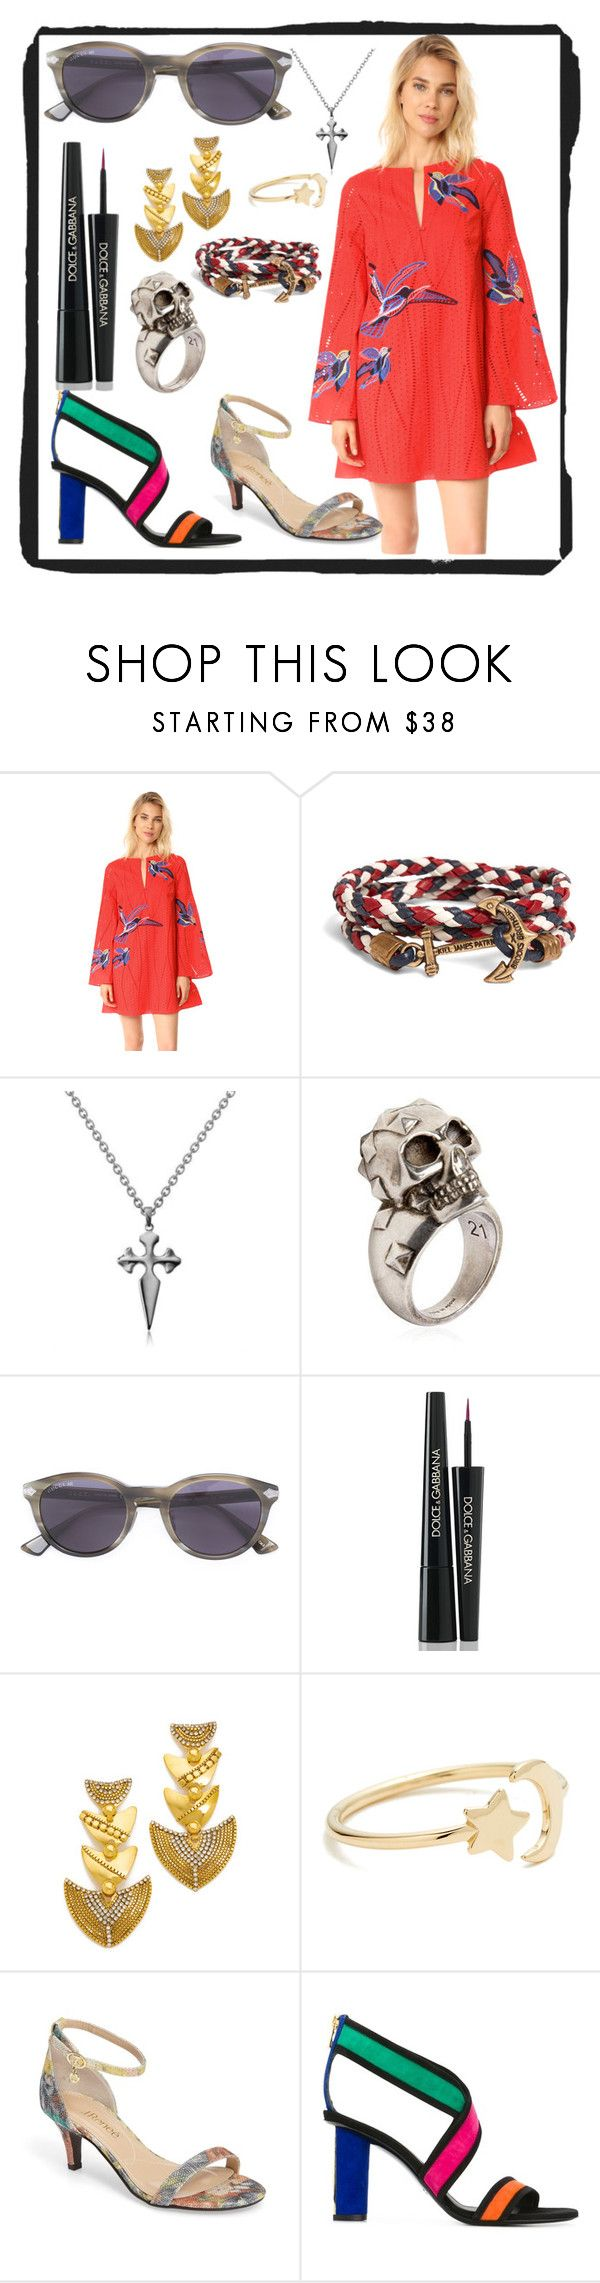 """Think fashion"" by denisee-denisee ❤ liked on Polyvore featuring Tanya Taylor, Brooks Brothers, Stone Paris, Alexander McQueen, Gucci, Dolce&Gabbana, Erickson Beamon, Ariel Gordon and Balmain"